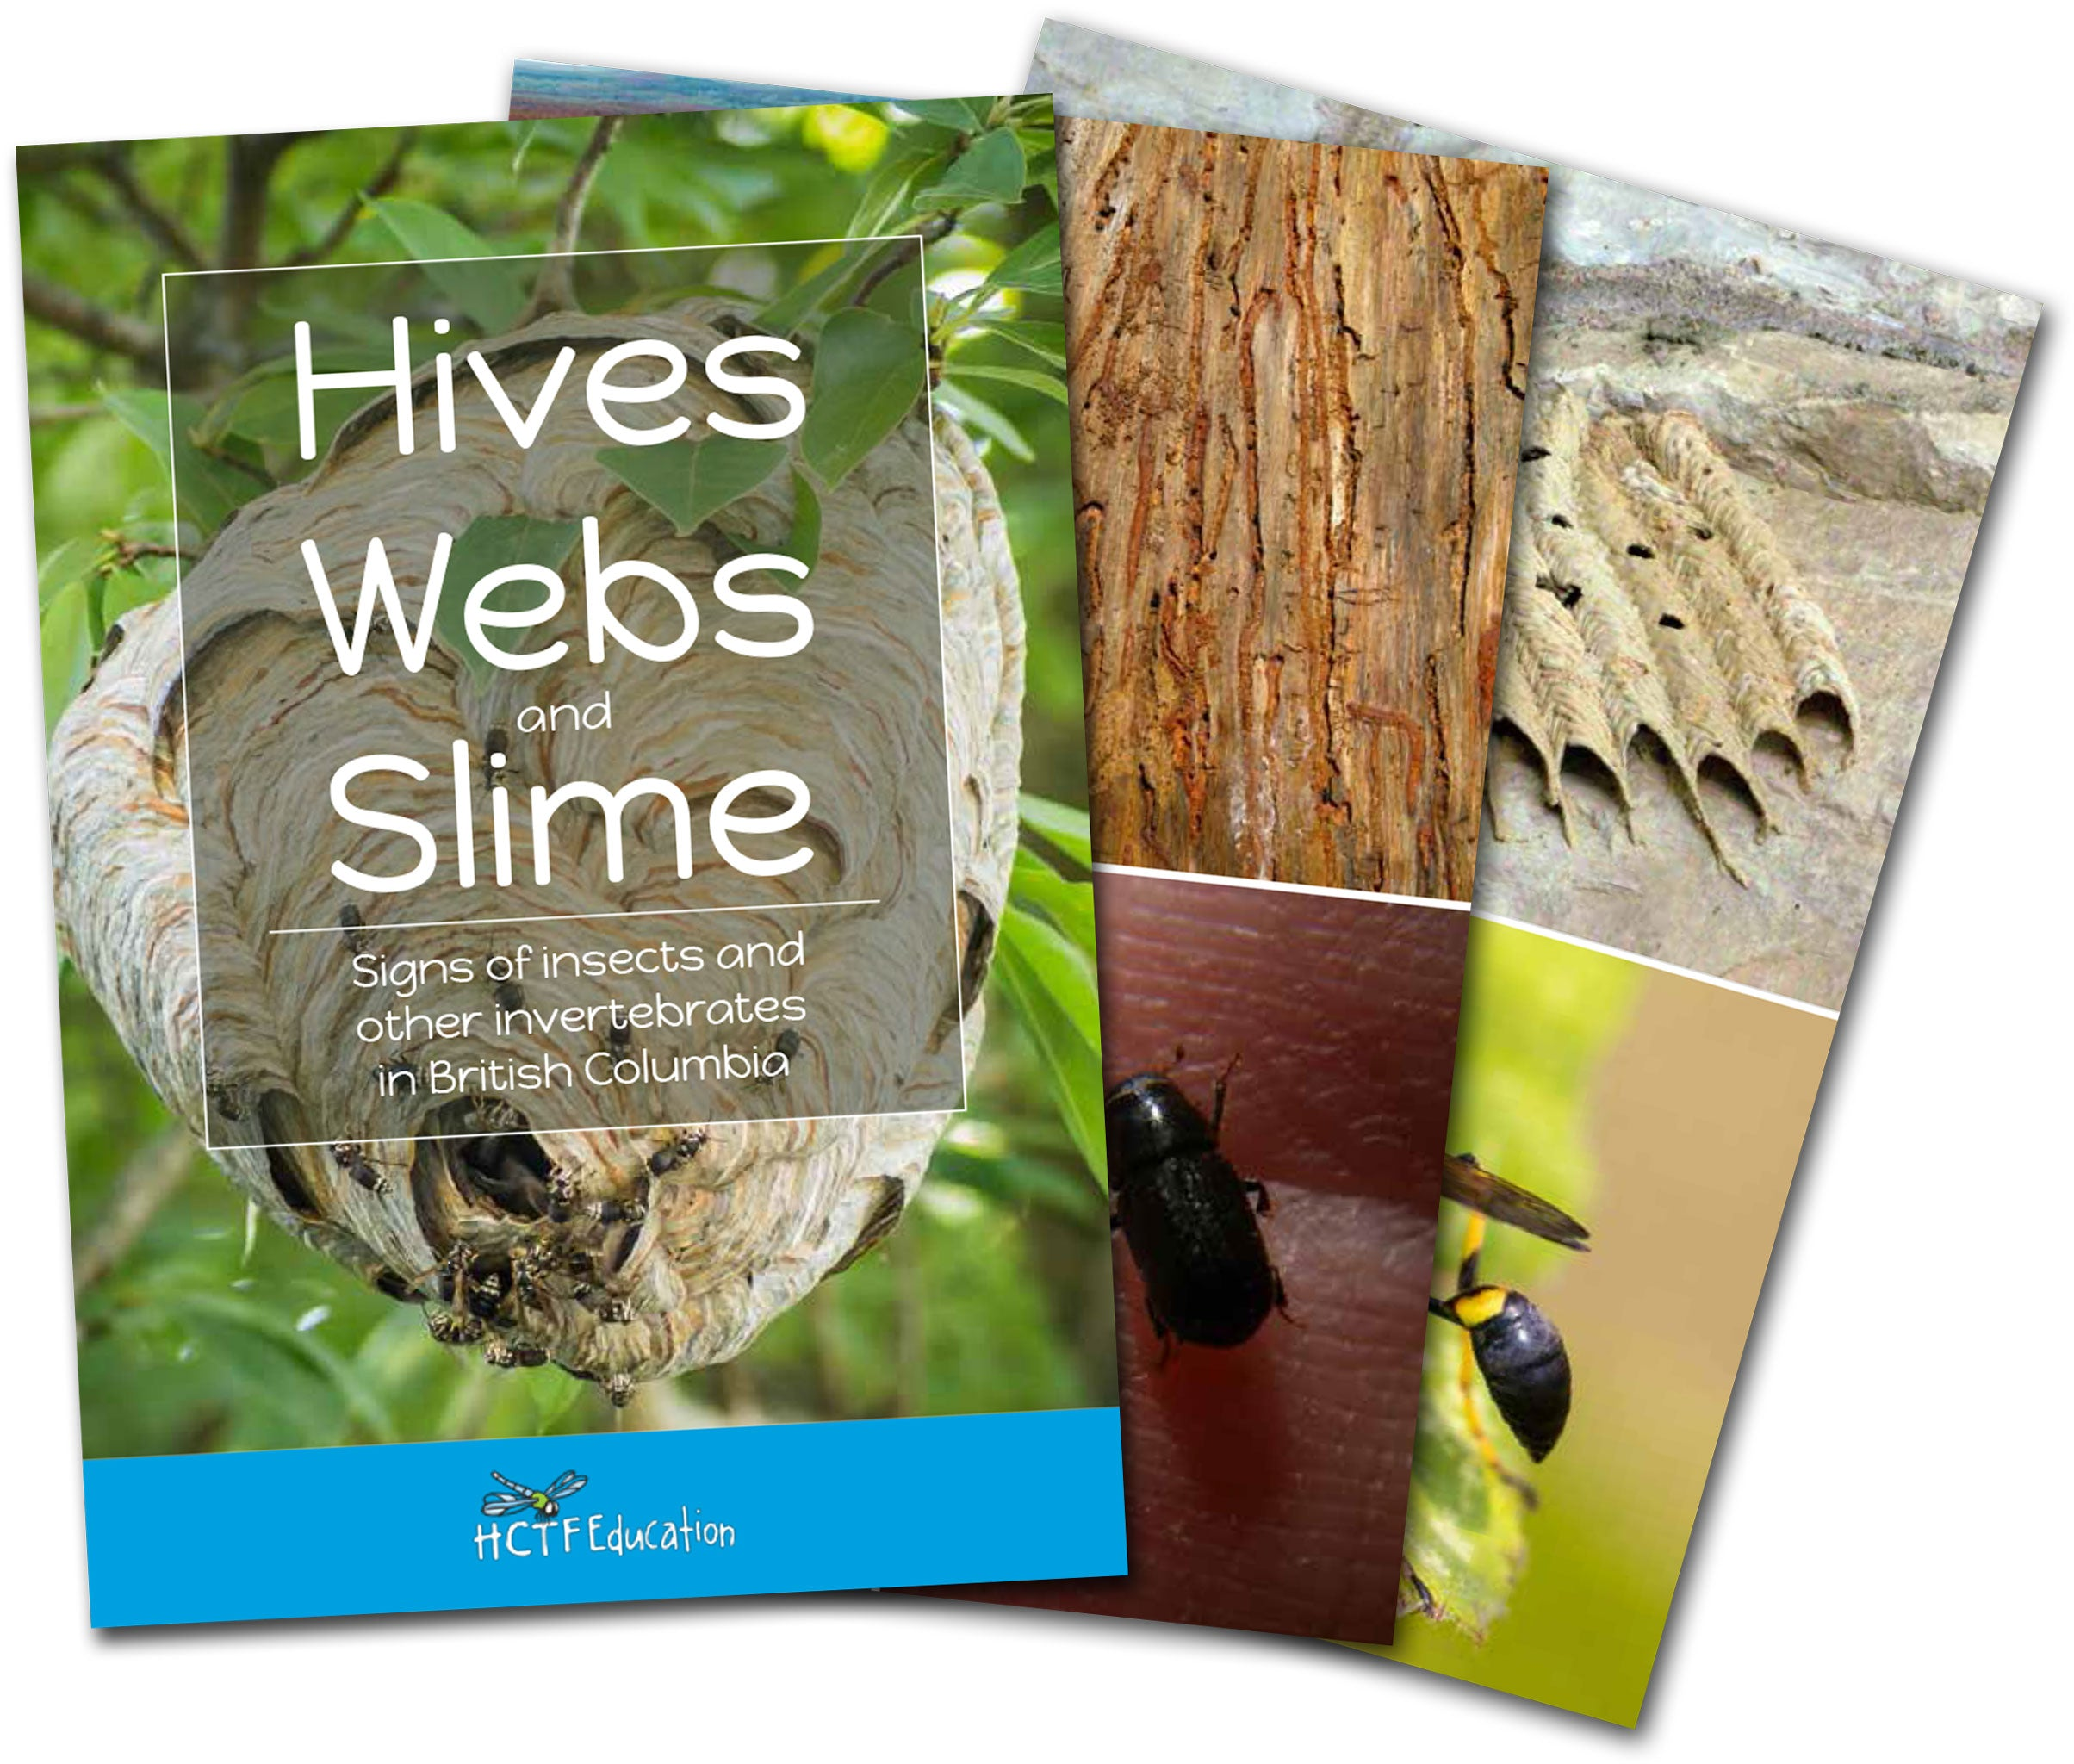 Hives, Webs, and Slime - Insect Signs Field Identification Cards